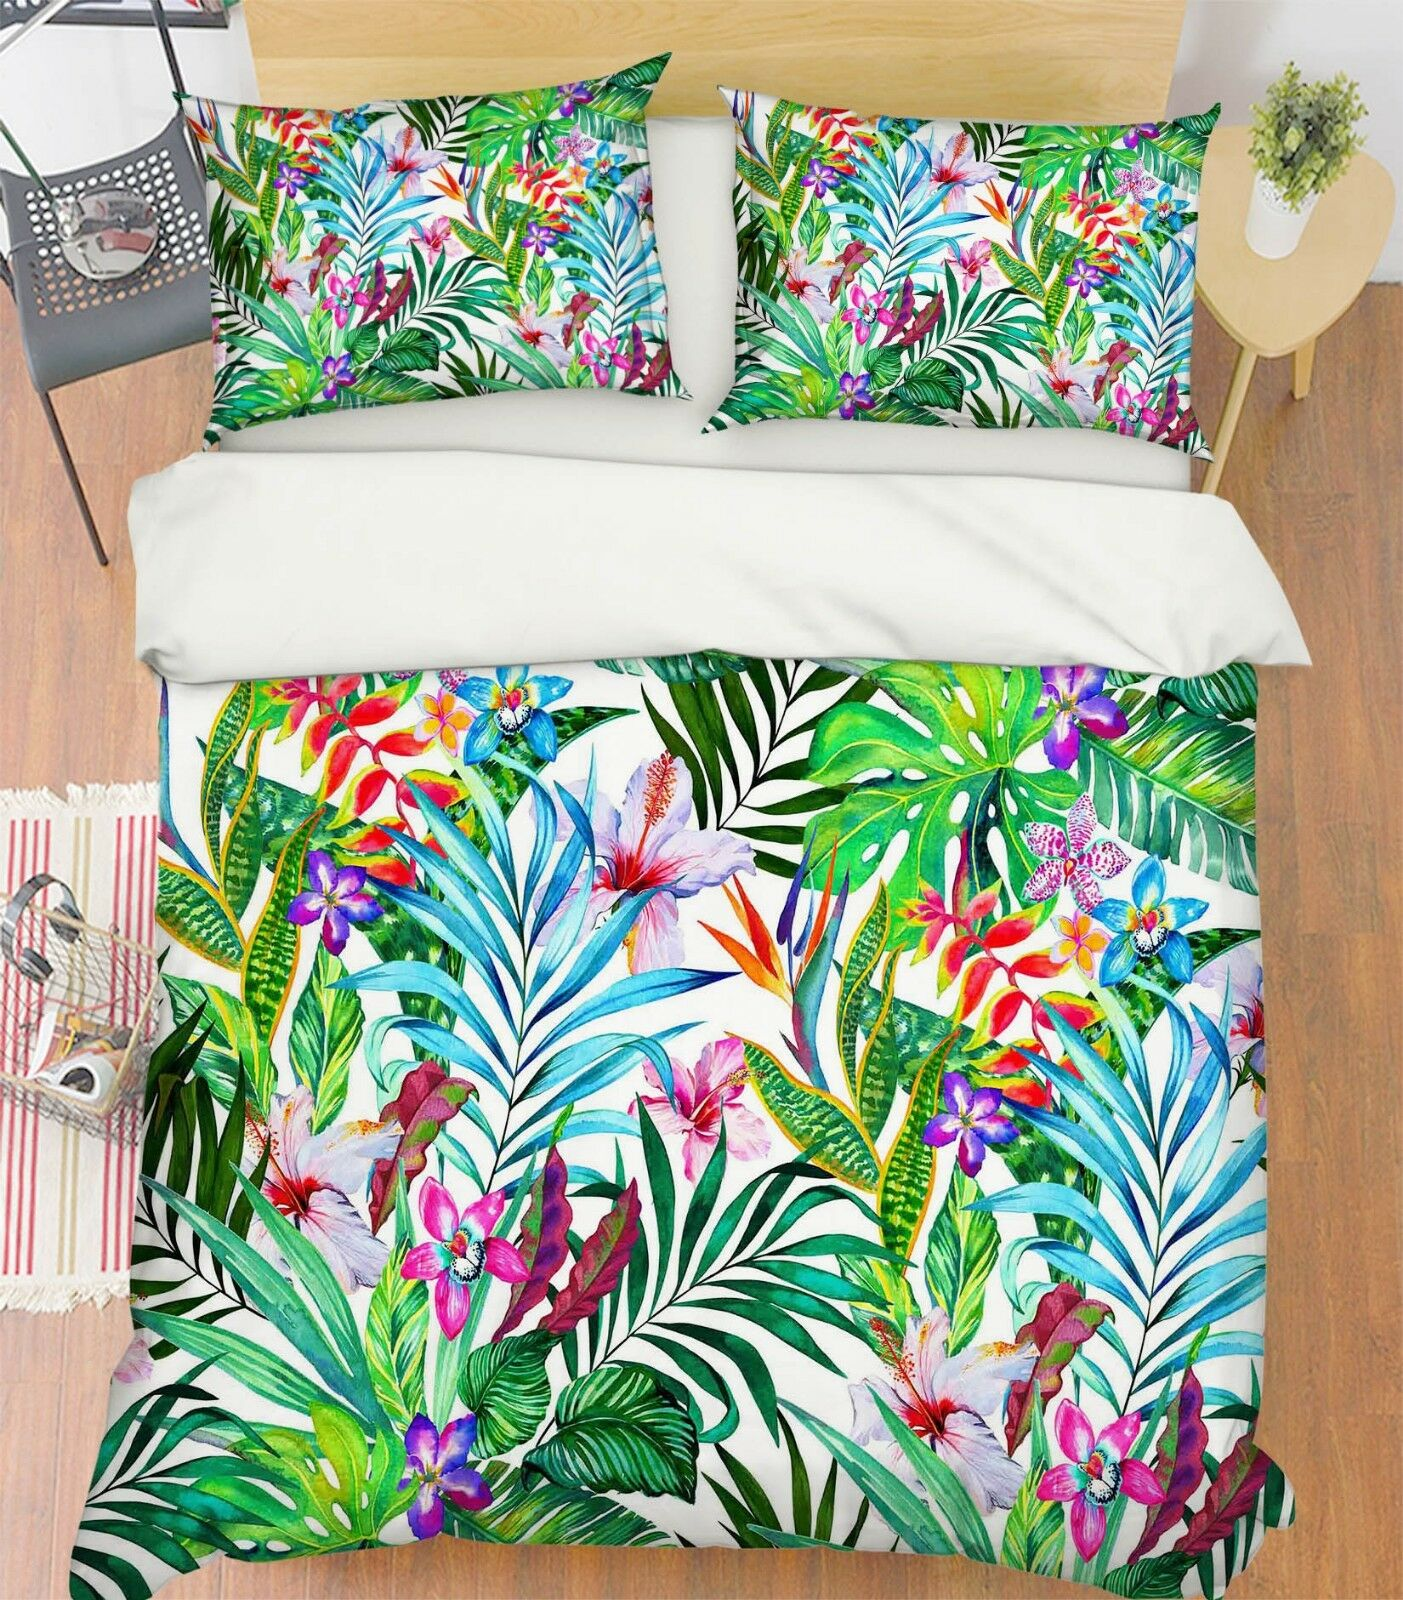 3D Painted Leaves 789 Bed Pillowcases Quilt Duvet Cover Set Single Queen King CA